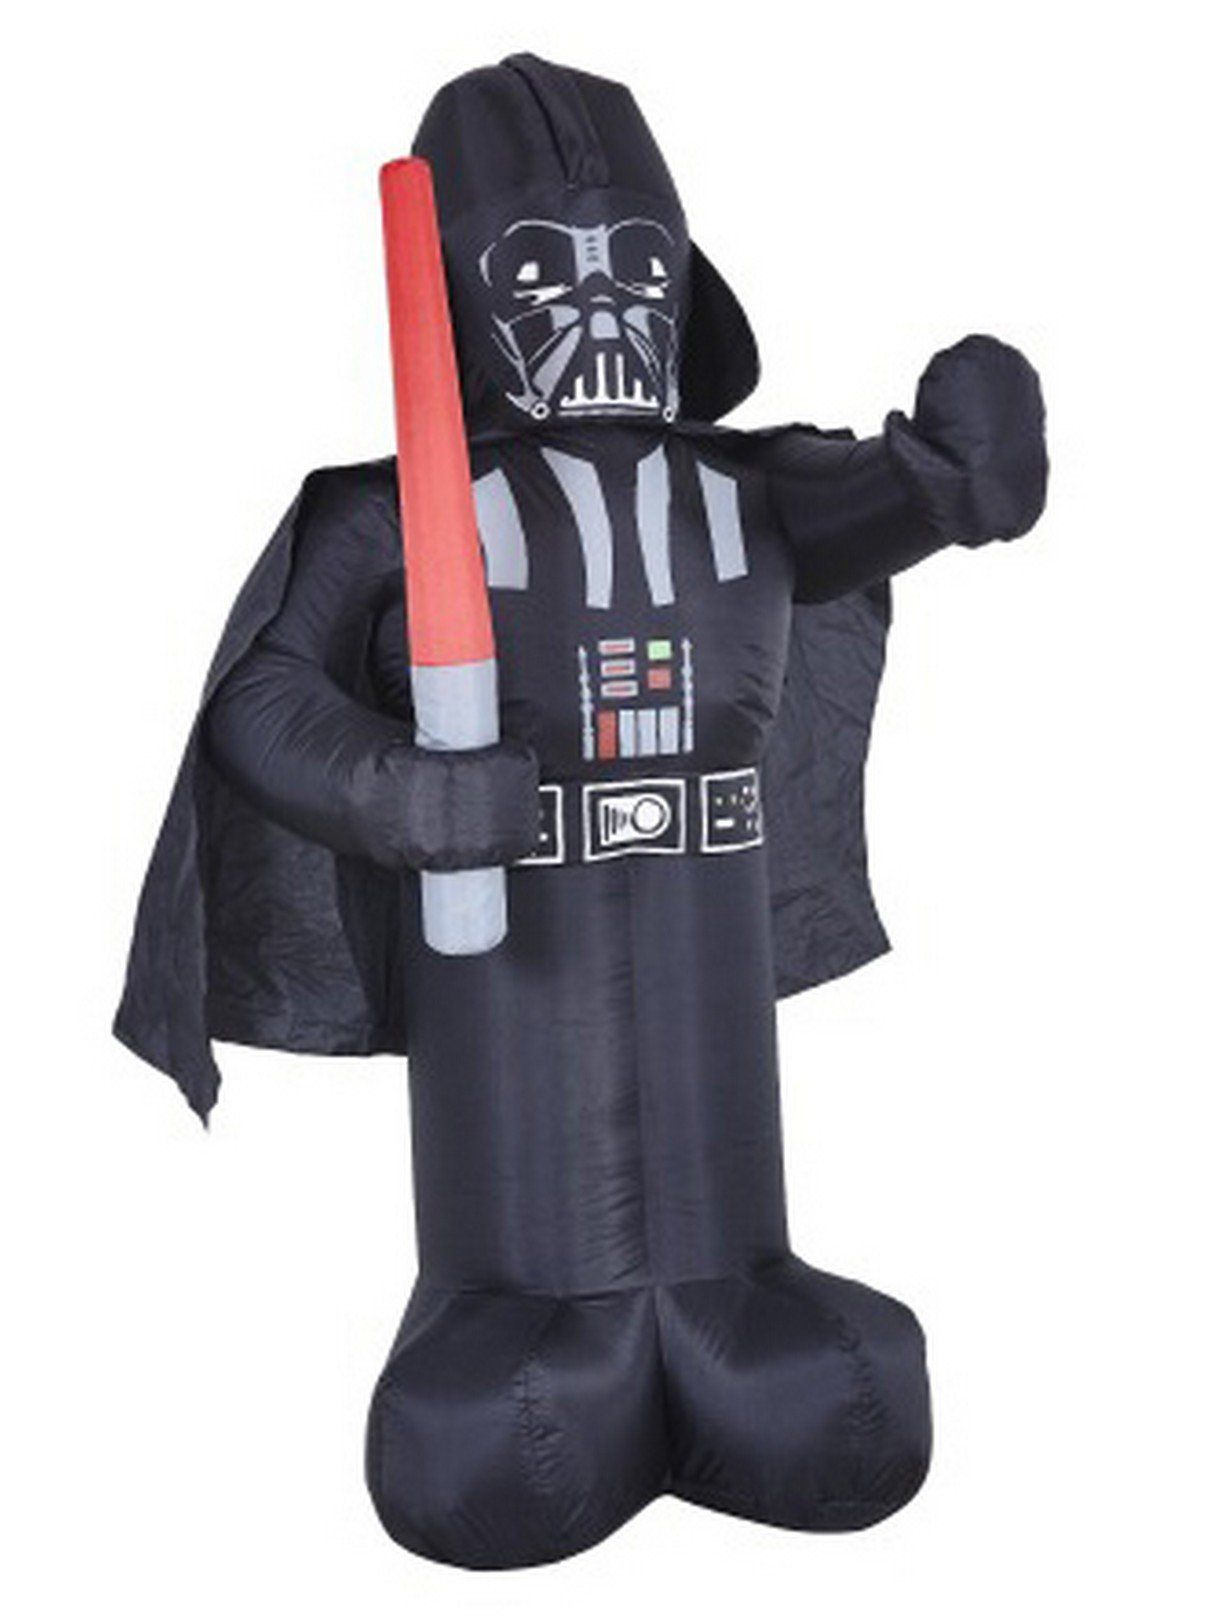 Star Wars Inflatable Darth Vader Prop Decoration Halloween